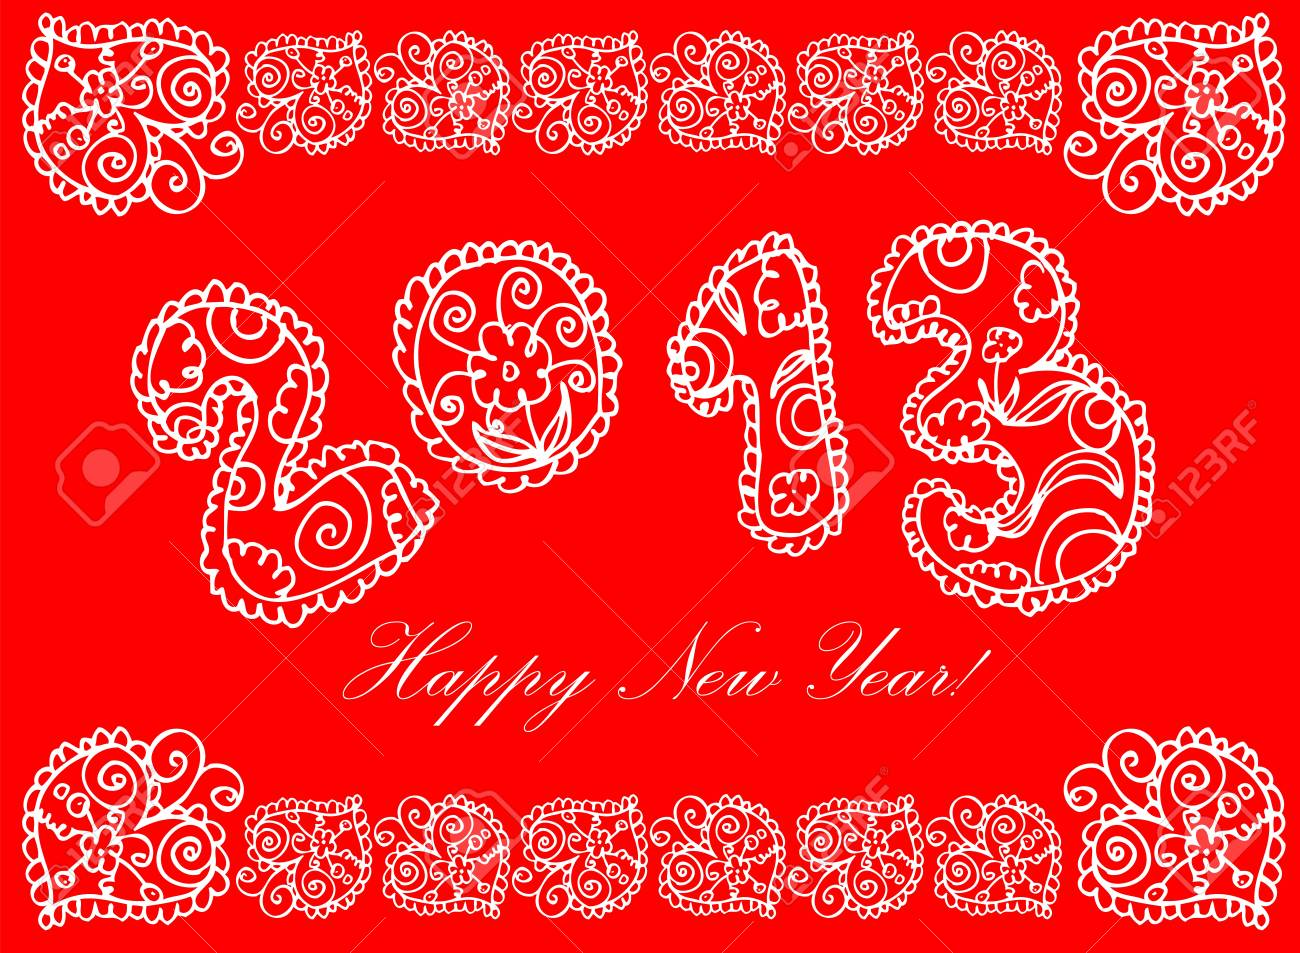 happy new year in flower 2013 on a white background Stock Vector - 15771005